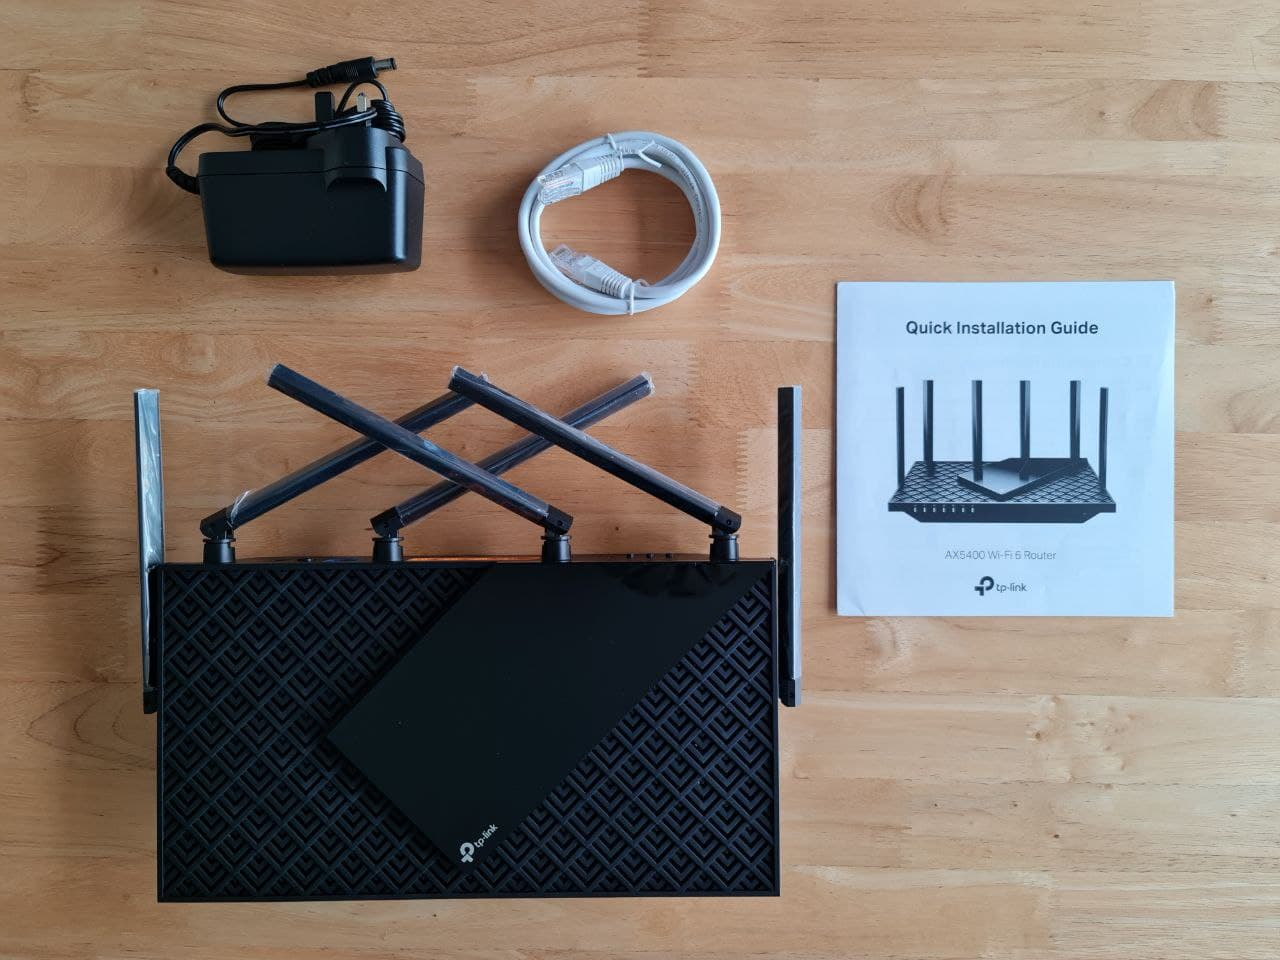 Geek Review: TP-Link Archer AX72 Router - The package